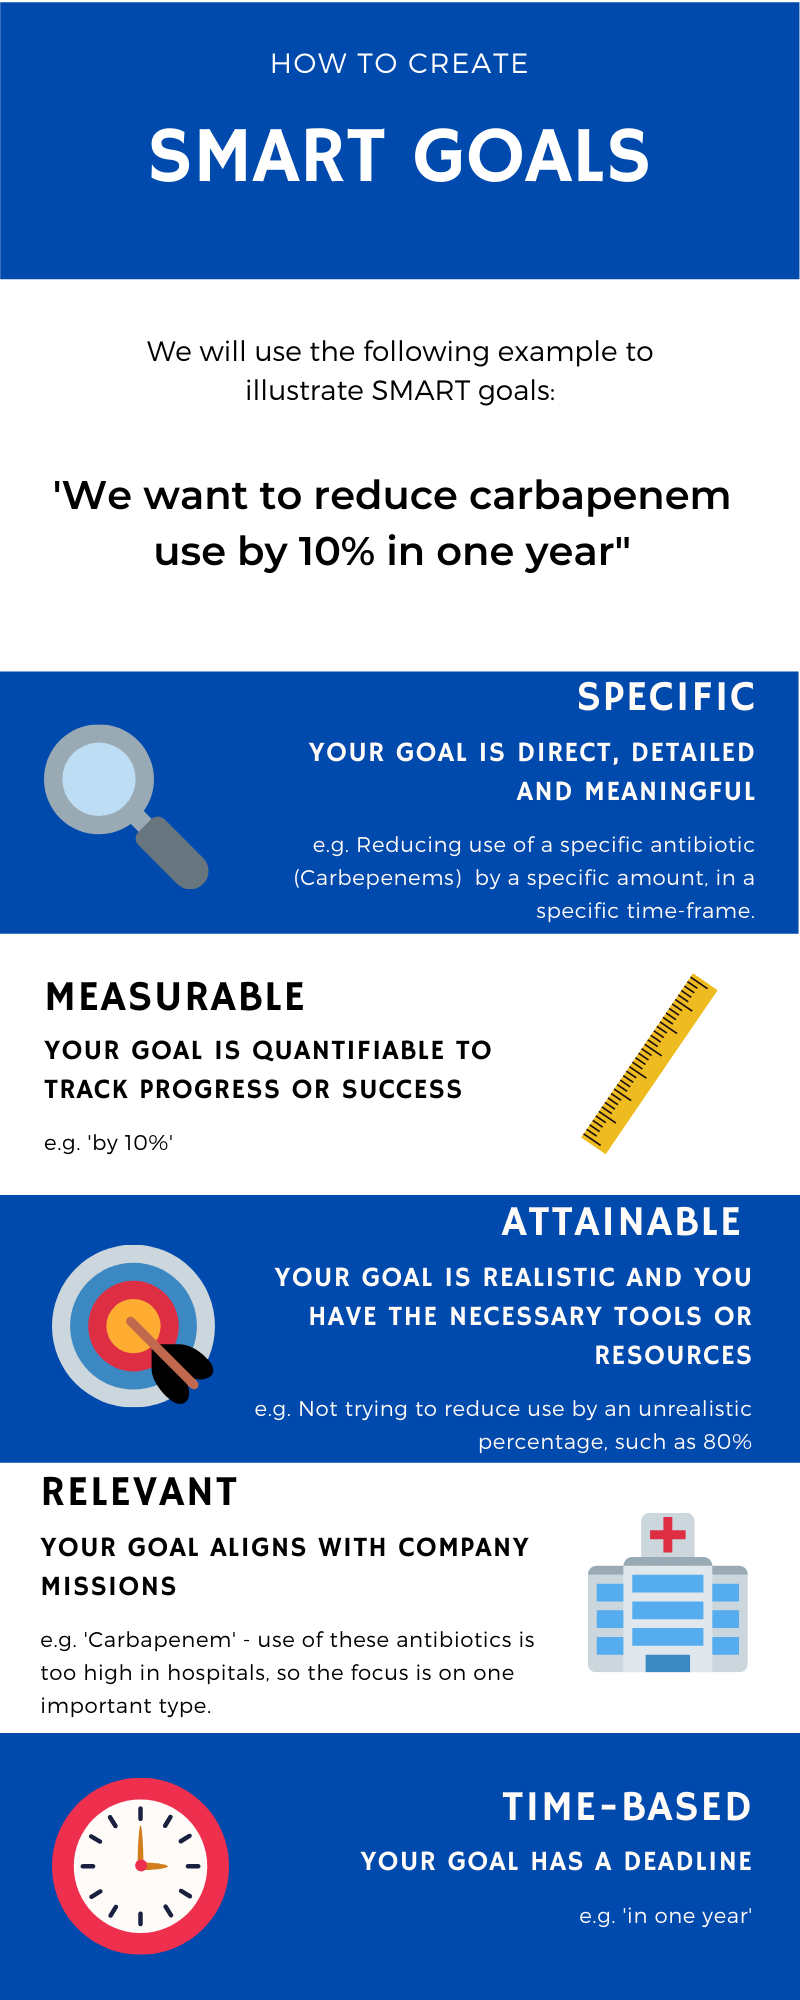 Infographic detailing what SMART goals are - these are Specific, Measurable, Attainable, Relevant, and Time-Based. The example provided of a 'SMART goal' is 'we want to reduce carbepenem use by 10% in one year'.